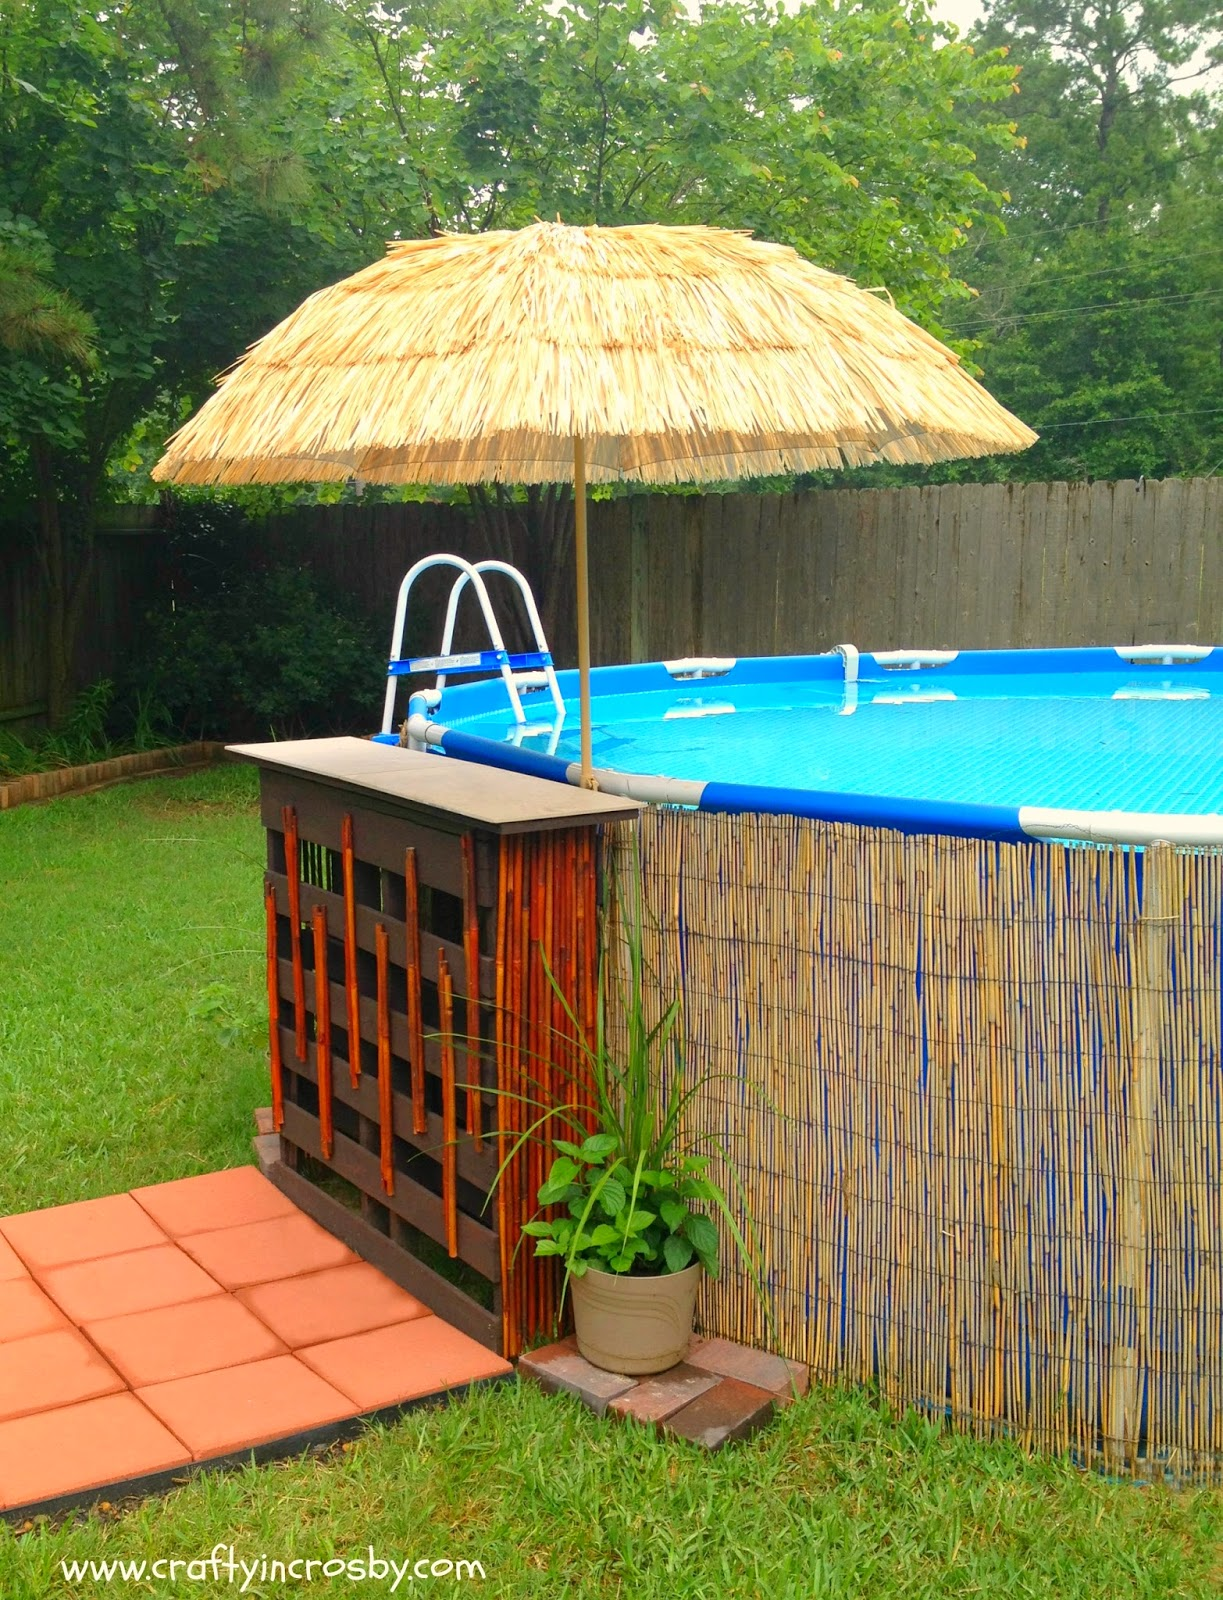 Crafty in crosby tiki bar for the redneck swimming hole for Decor around swimming pool